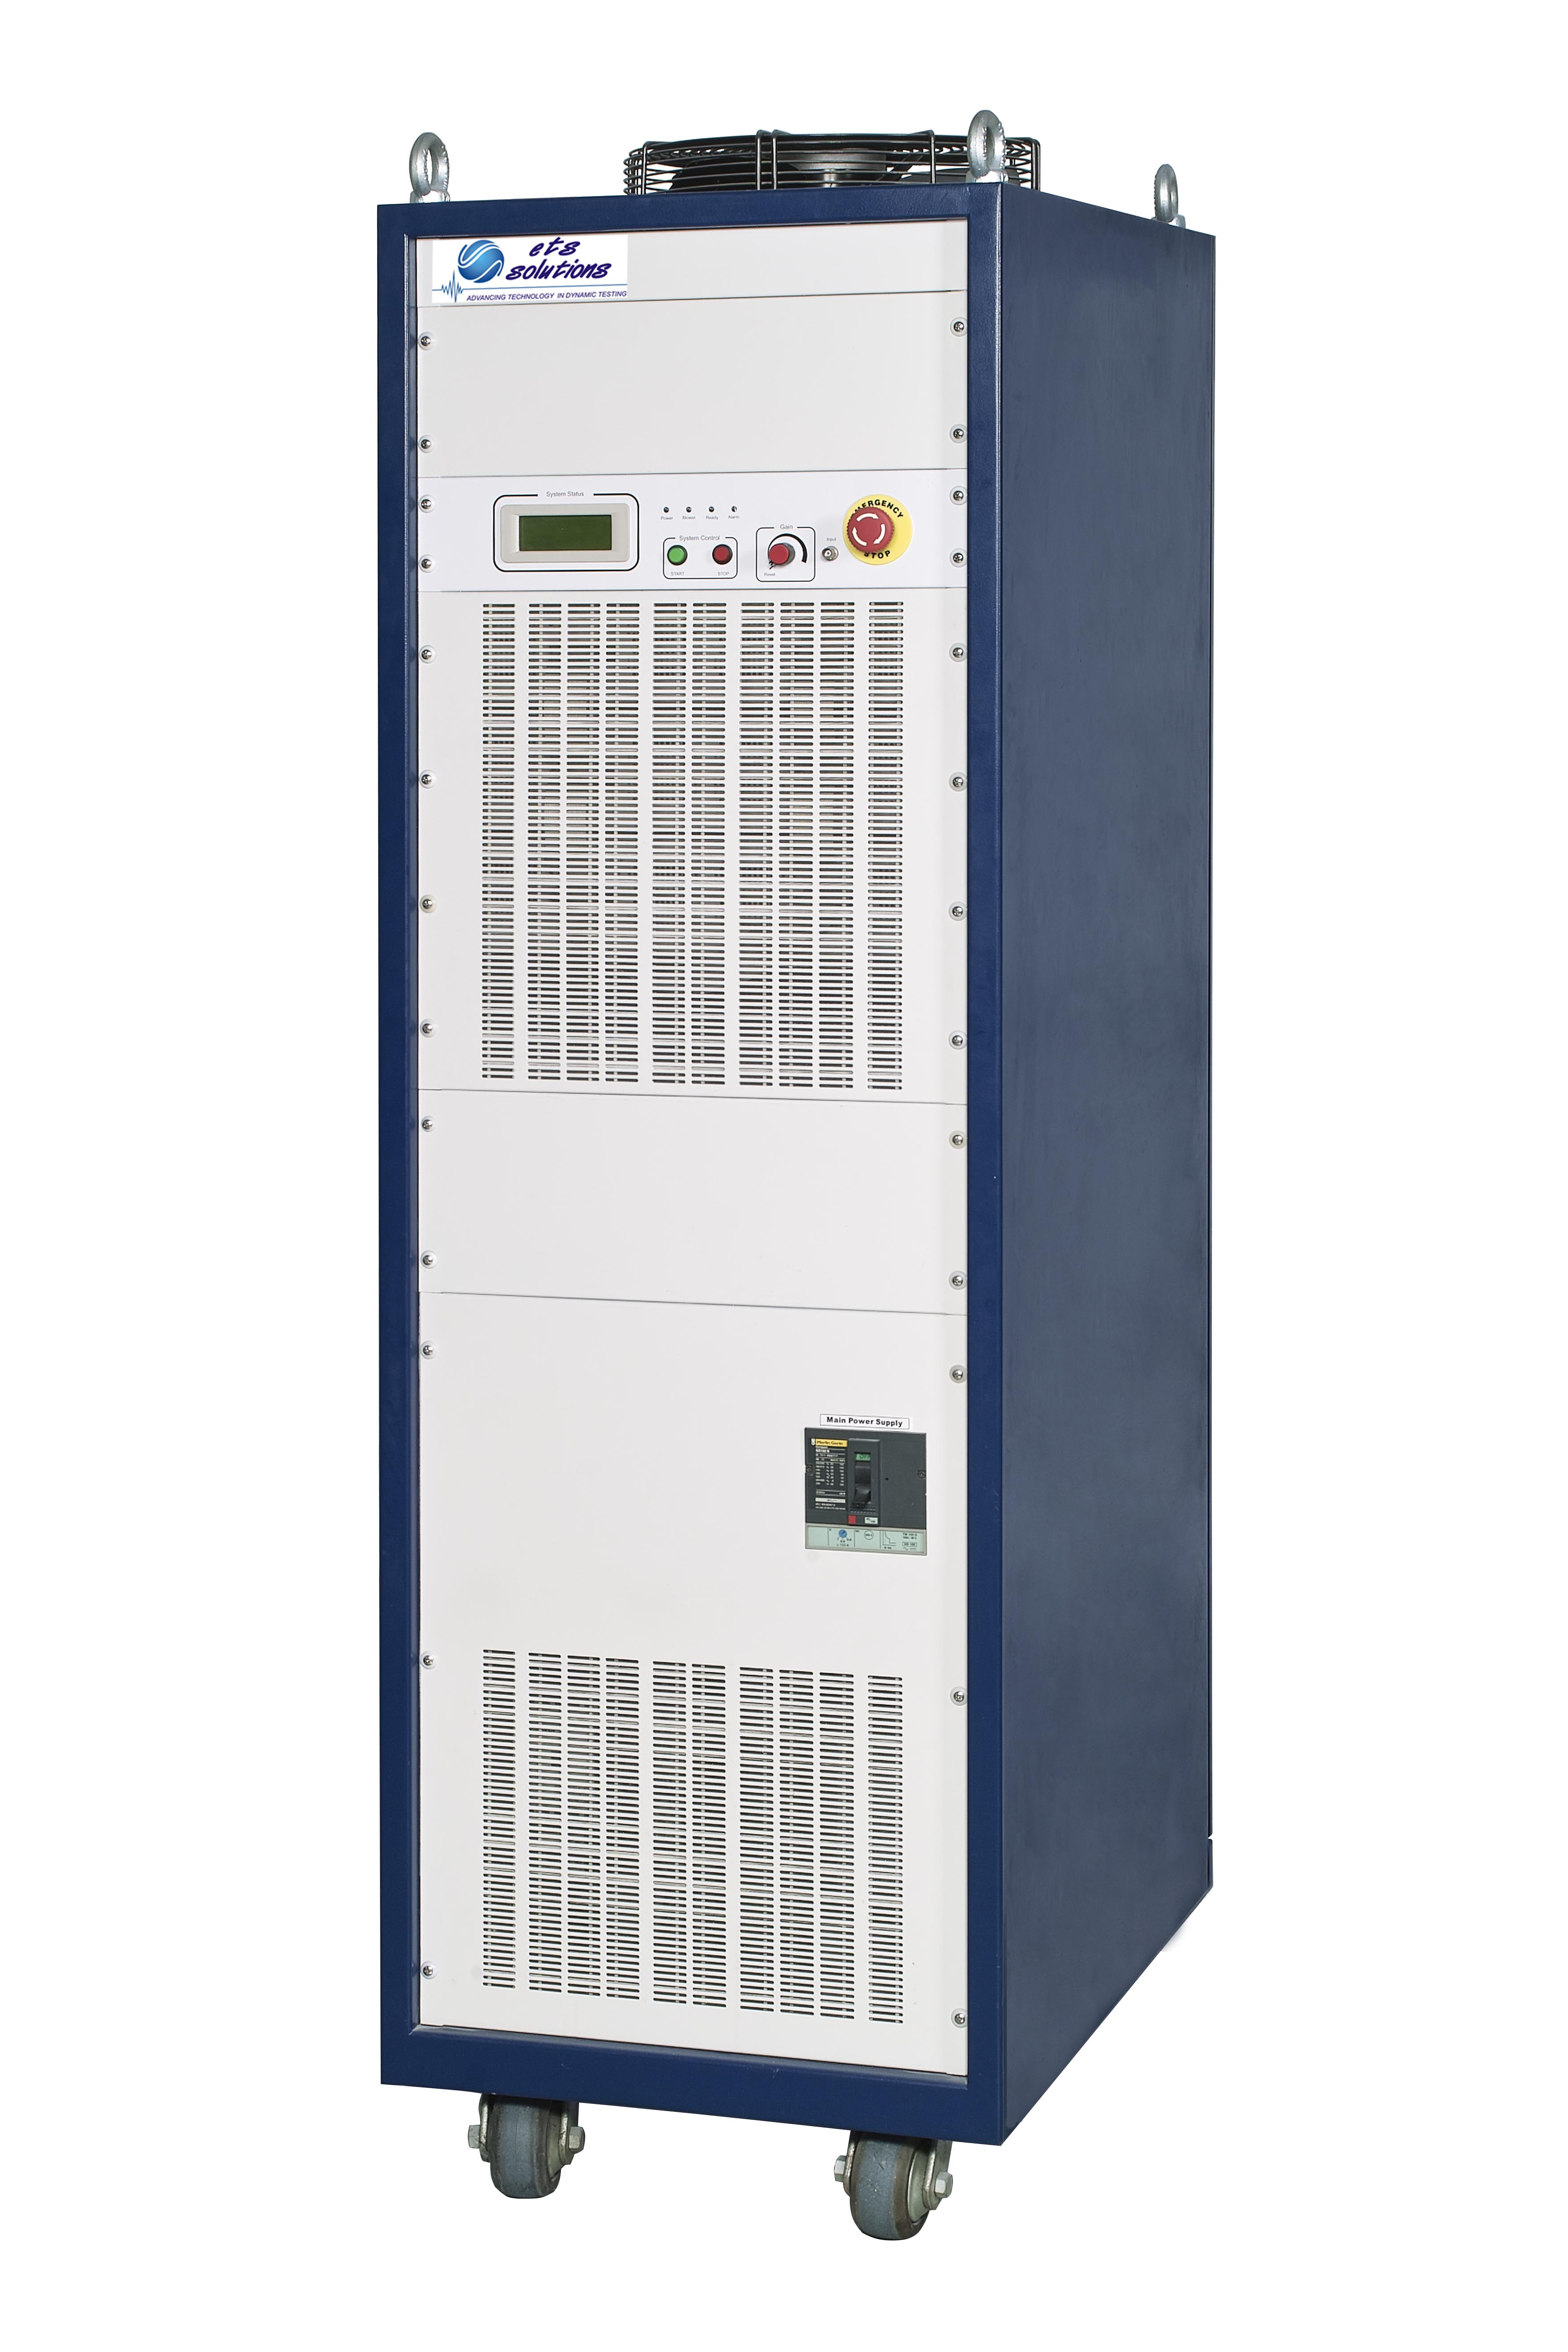 Cabinets: 1, Max Power Output: 13kVA to 48kVA, Max Output Voltage: 120V, Max Output Current: 400A